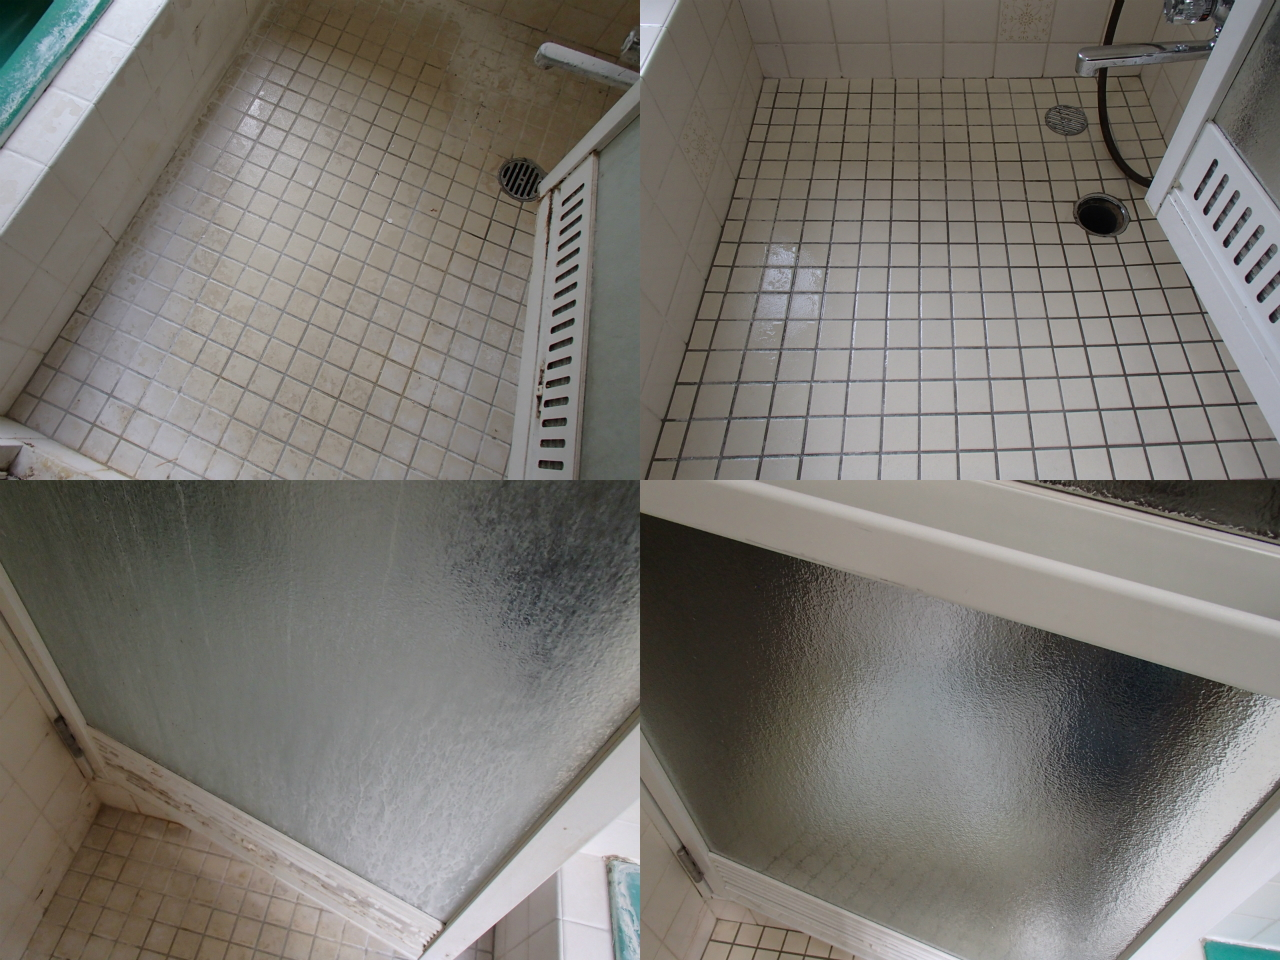 http://ajras.net/images/130308-bathroom1.jpg